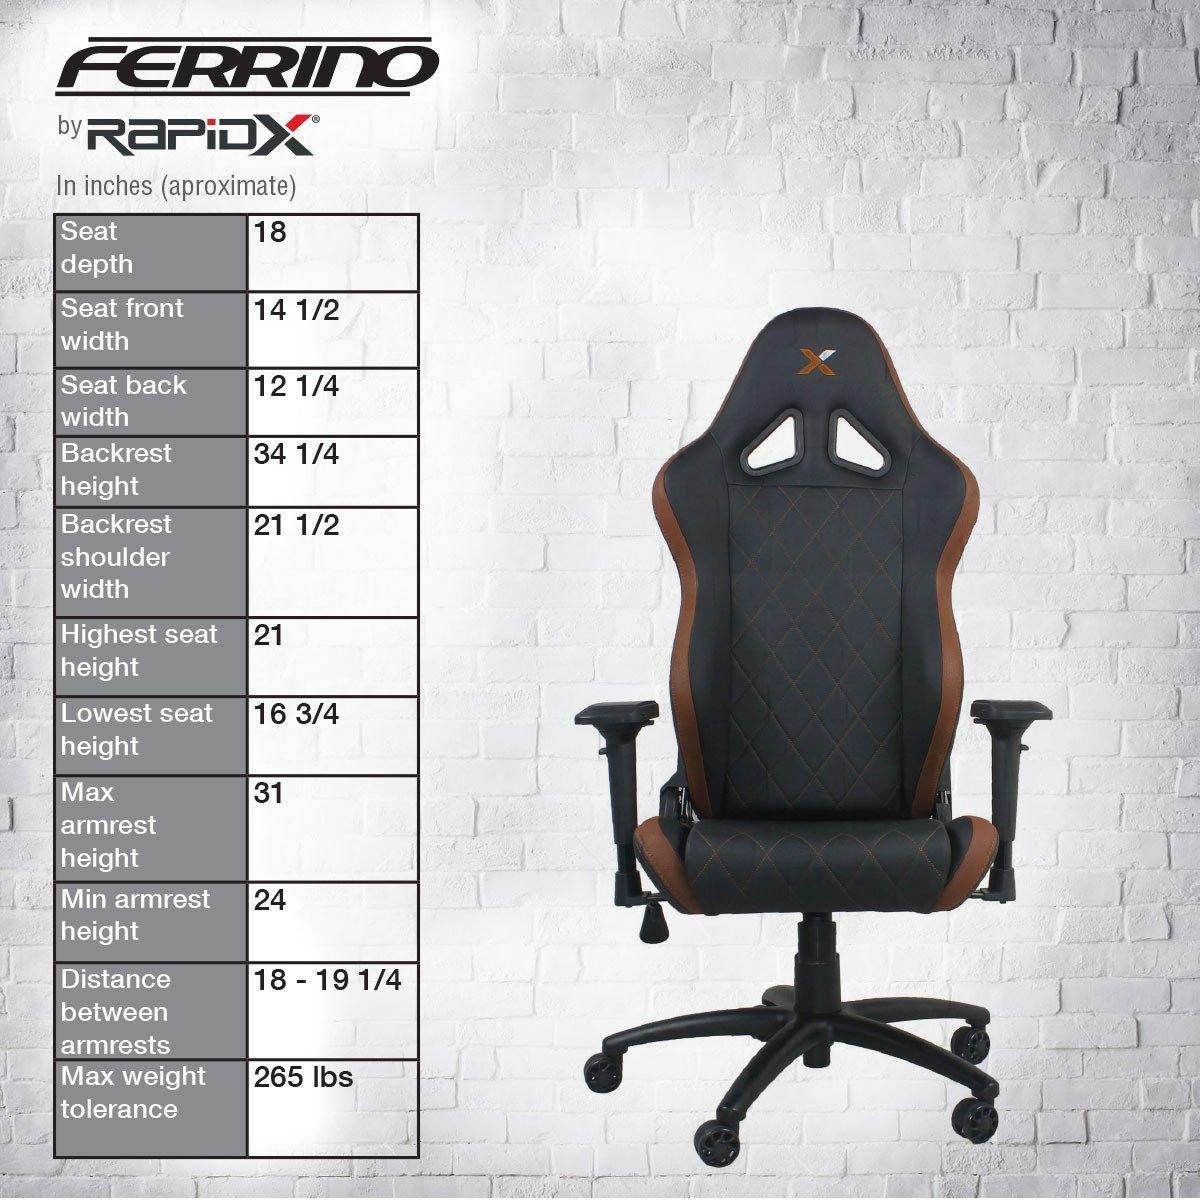 Ferrino Chair - Brown on Black